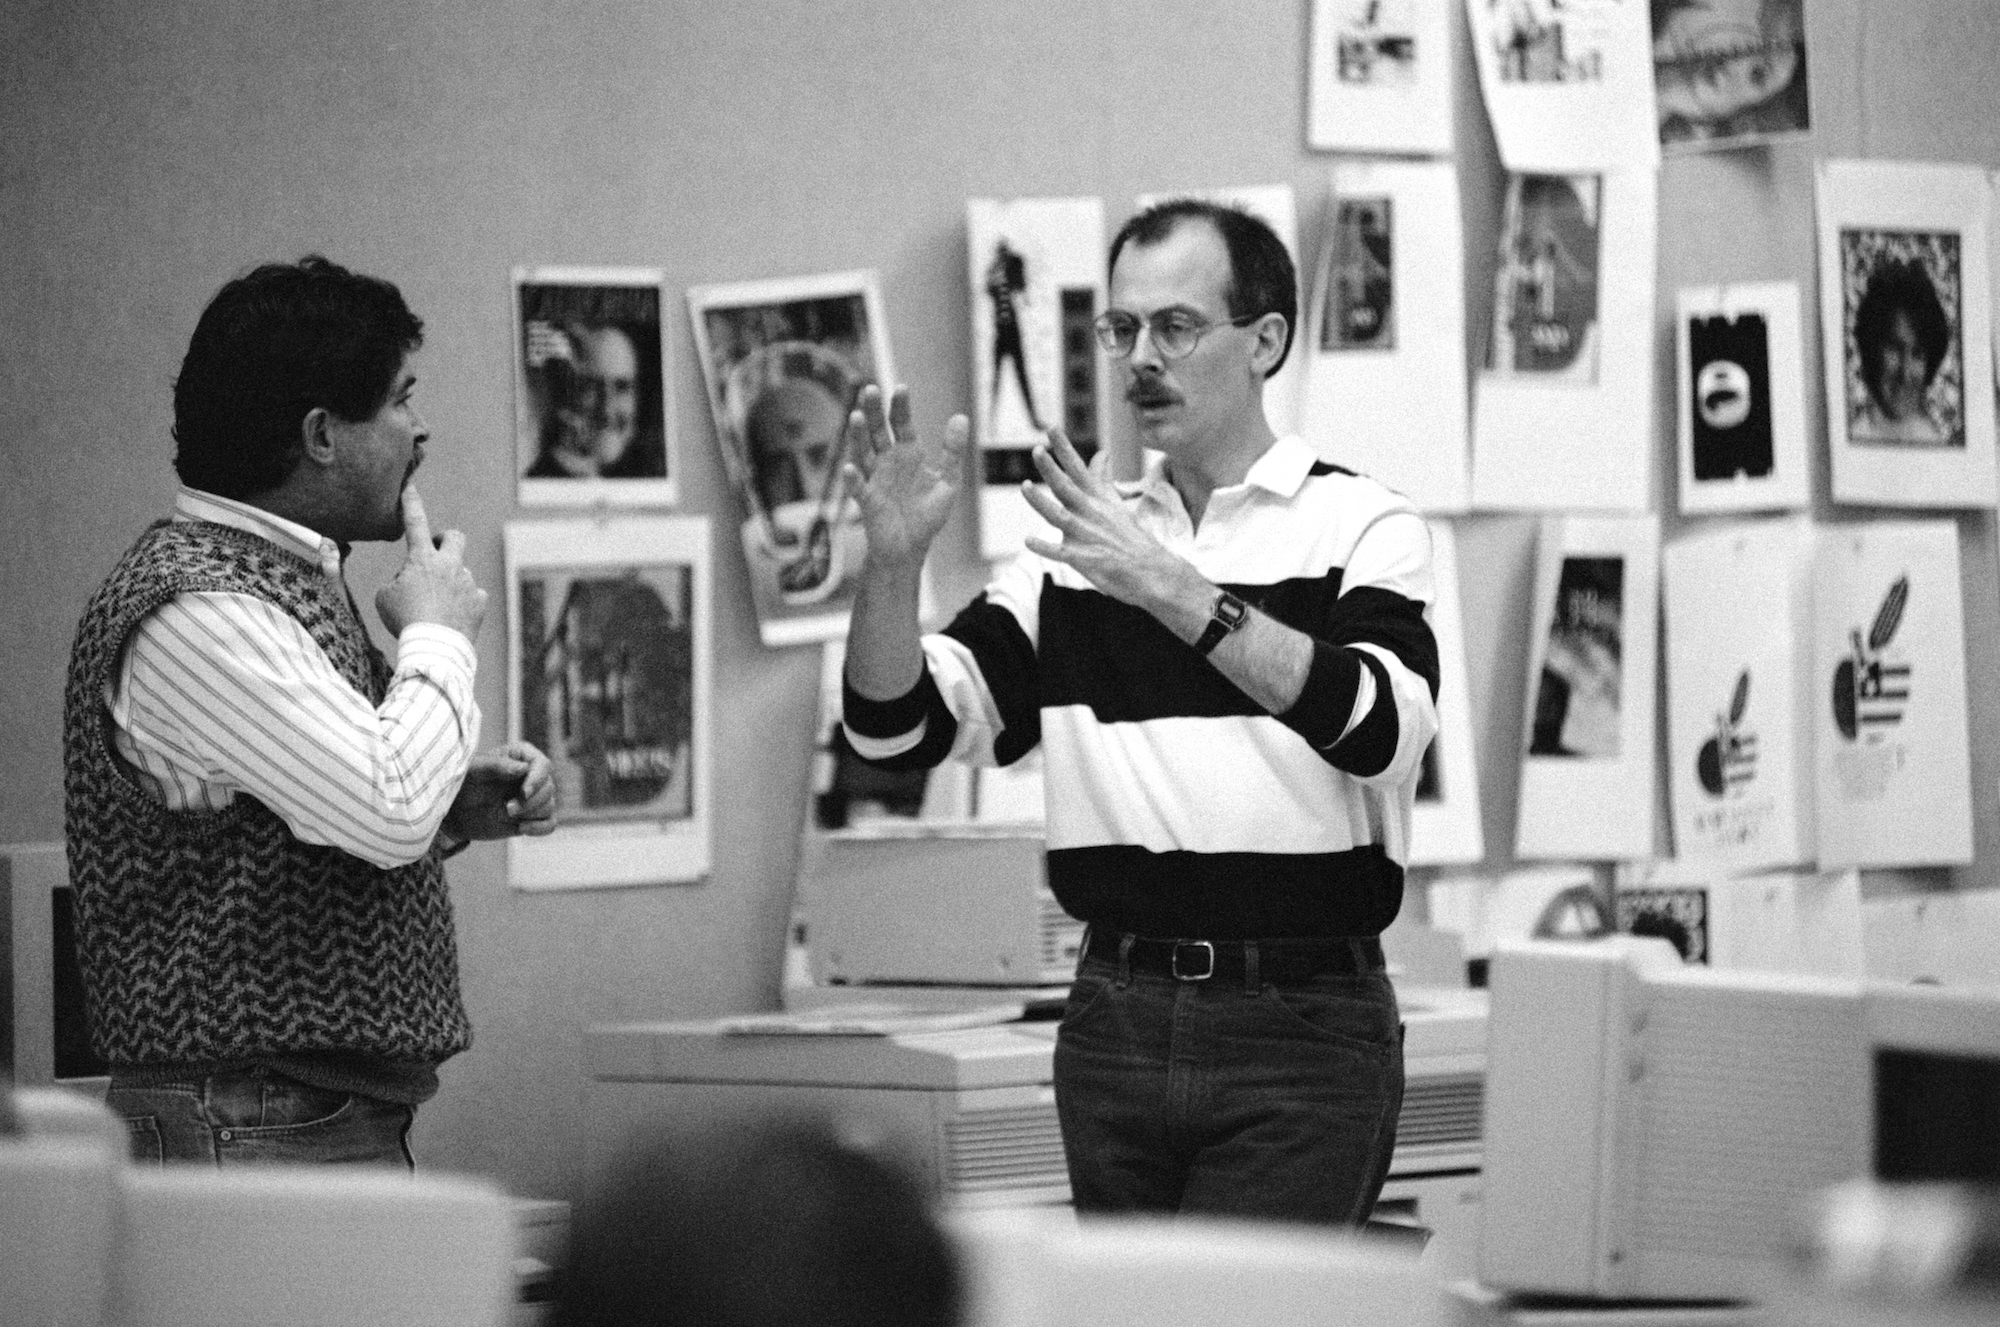 Russell Brown, Adobe Creative Director, March 1991